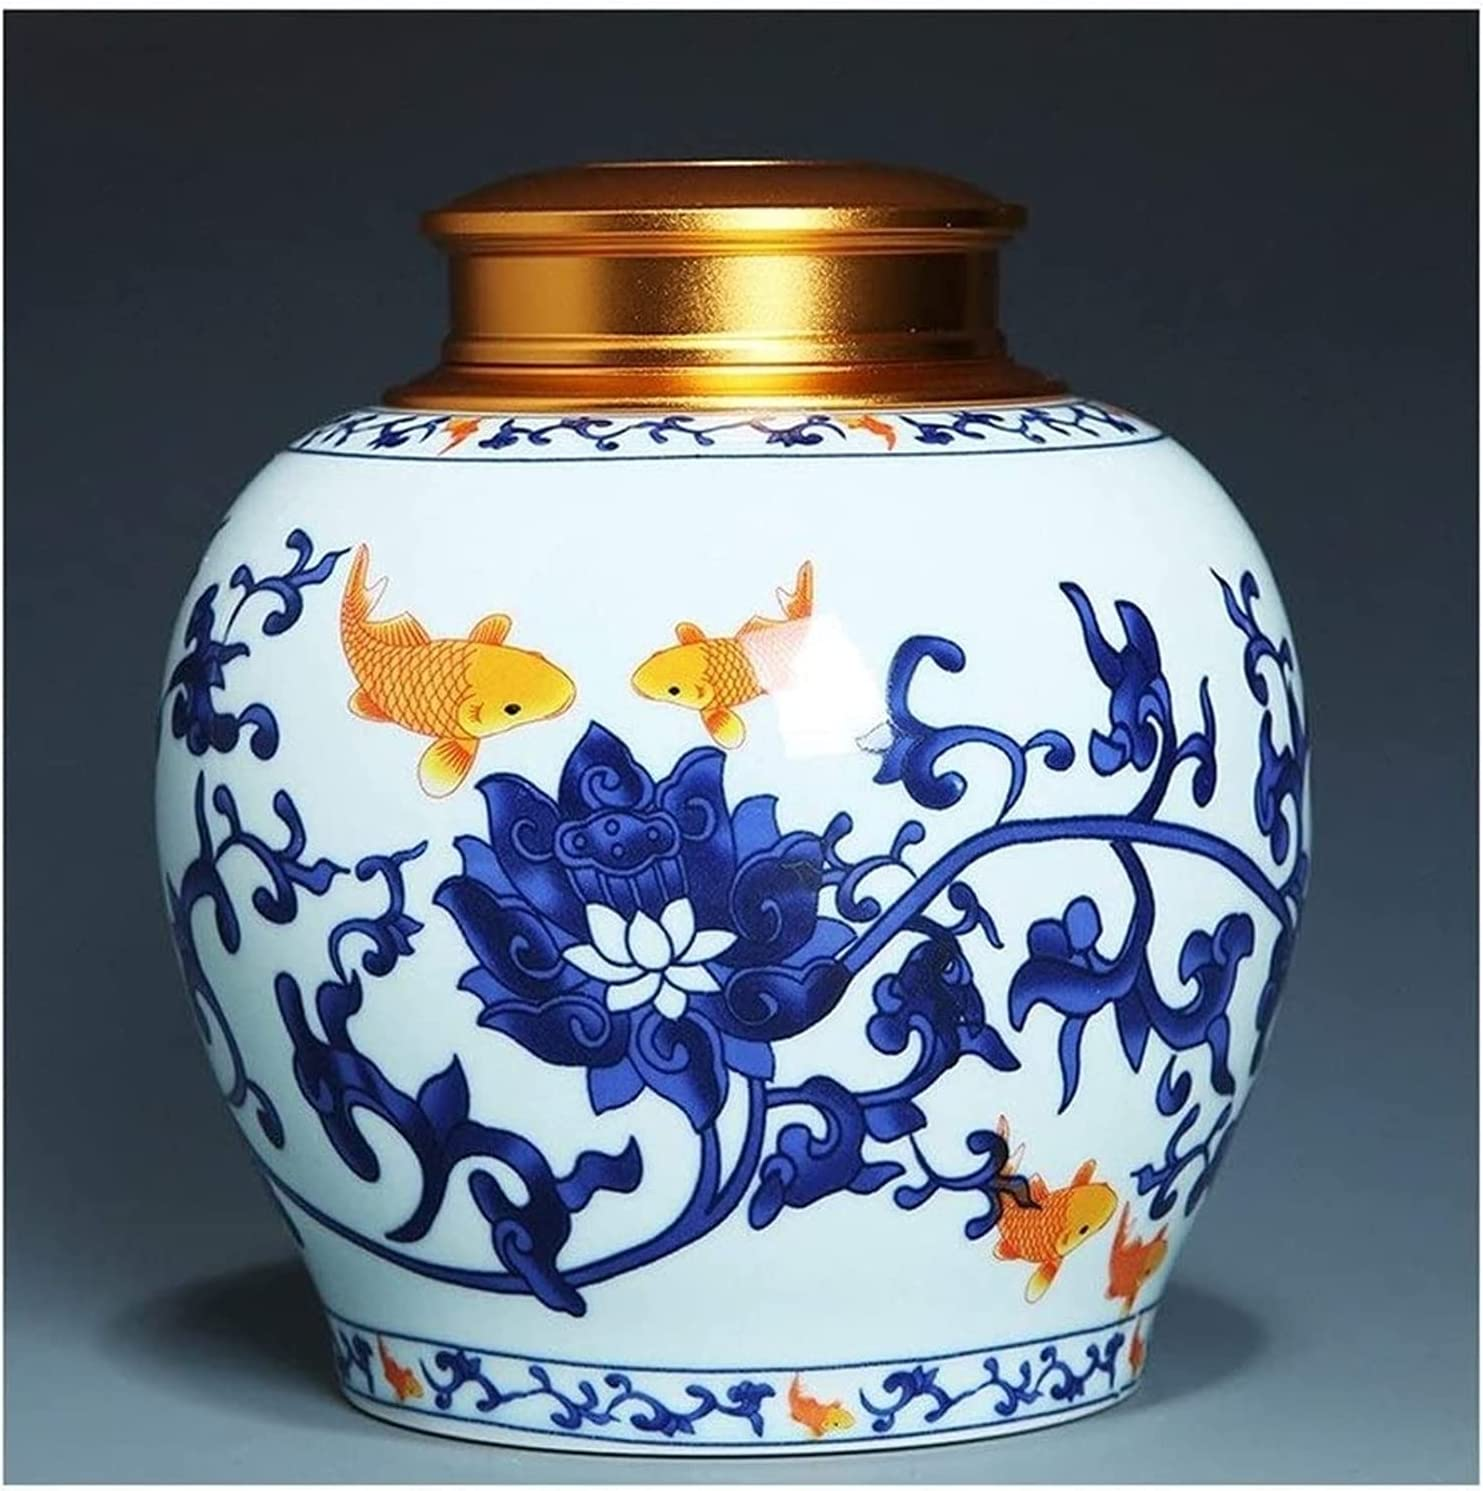 MTFZD Funeral Max 82% OFF Urn Cremation Free shipping Urns Ashes C or for Pet Spiral Adult